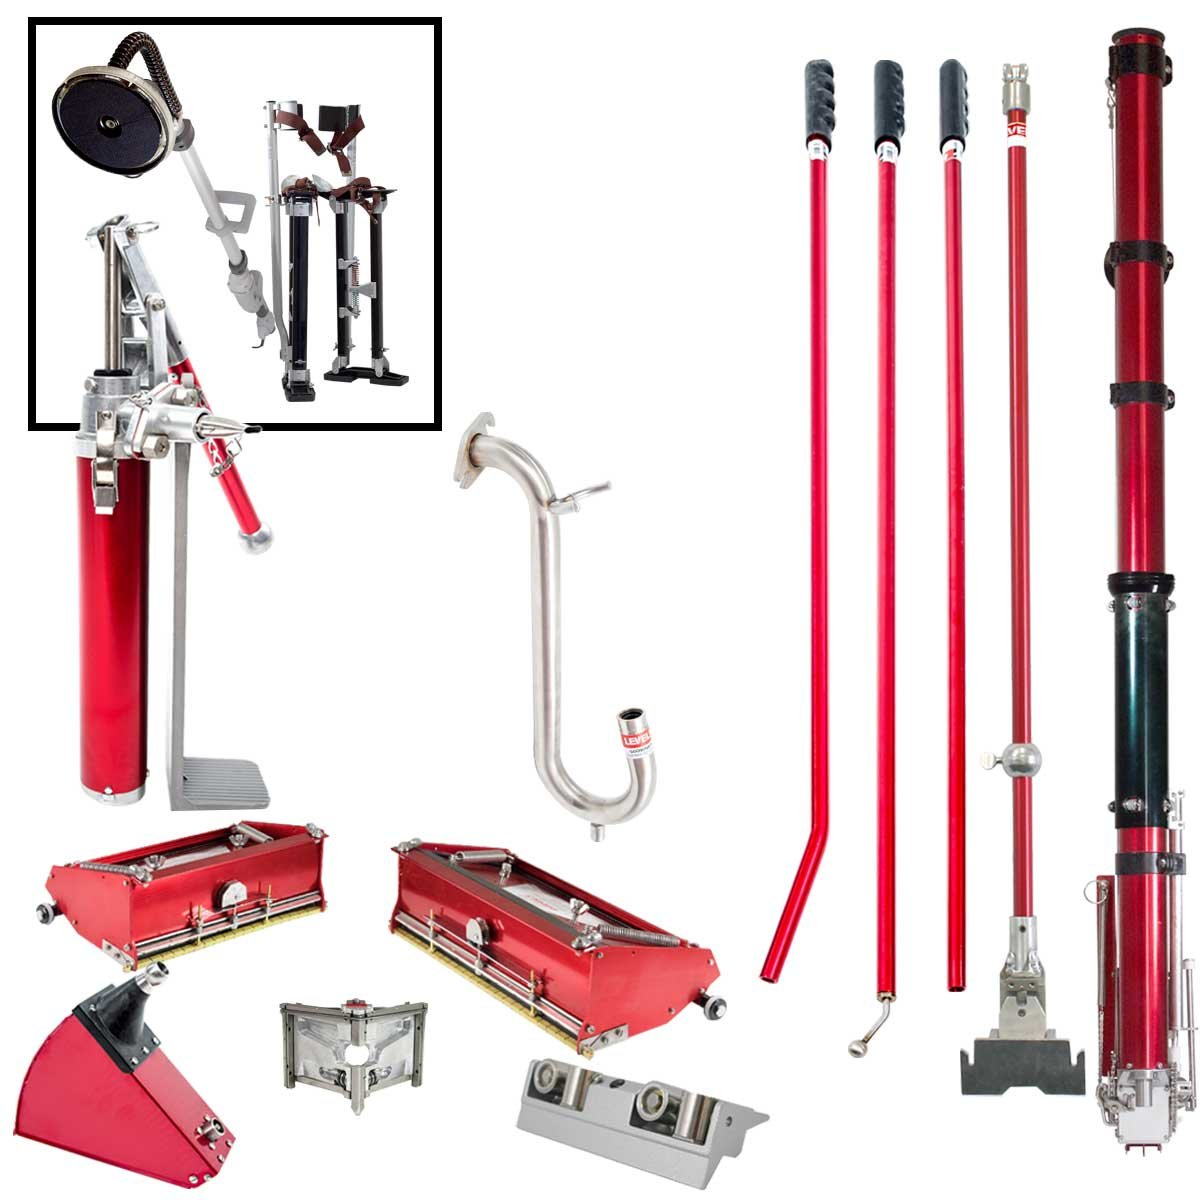 Level5 Full Drywall Taping and Finishing Tool Set with FREE STILTS and 9'' Disc POWER SANDER by Level5